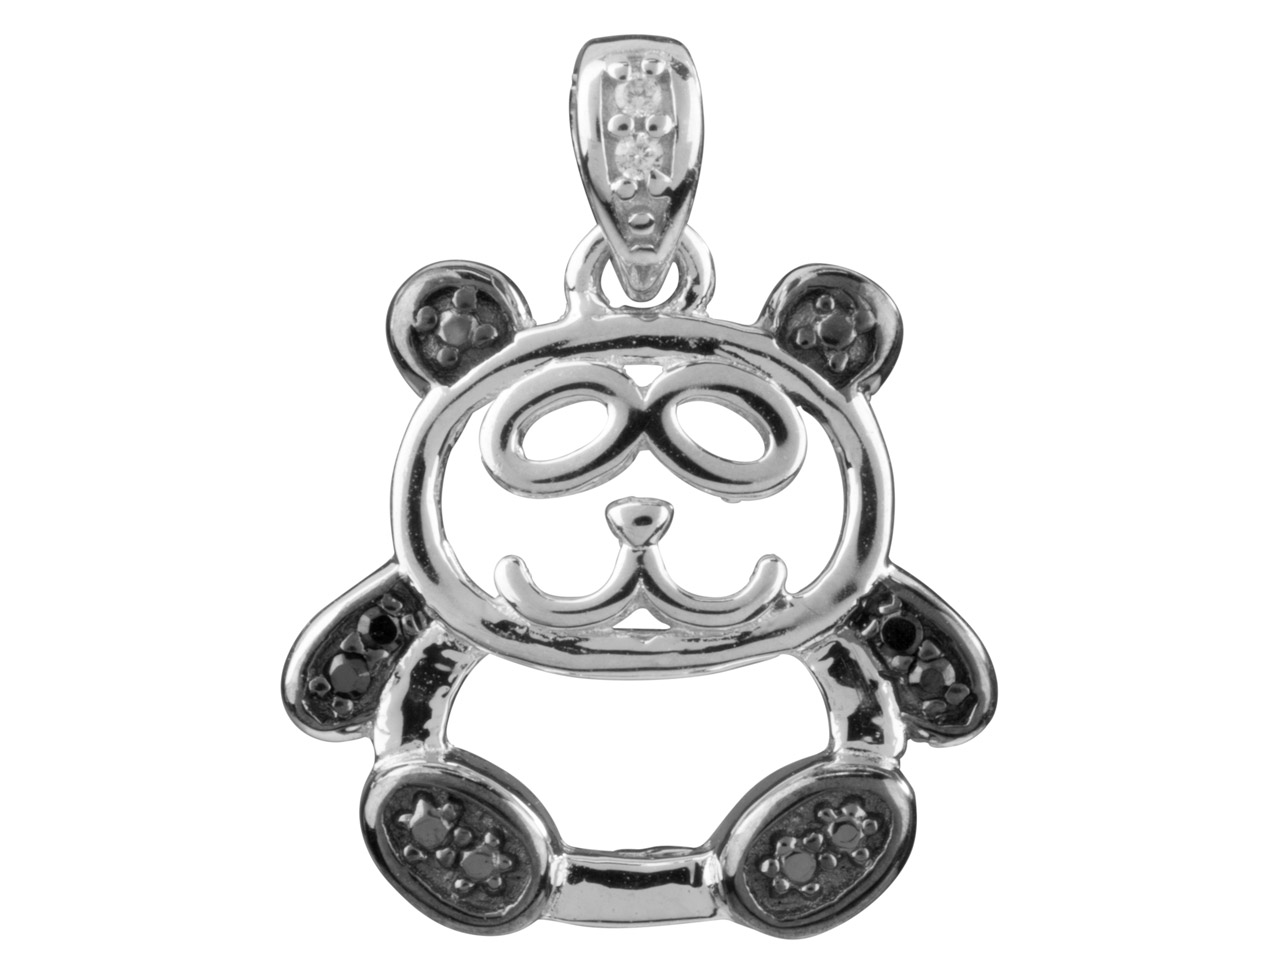 Sterling Silver Pendant Open Design Panda Black And White               Cubic Zirconia Set